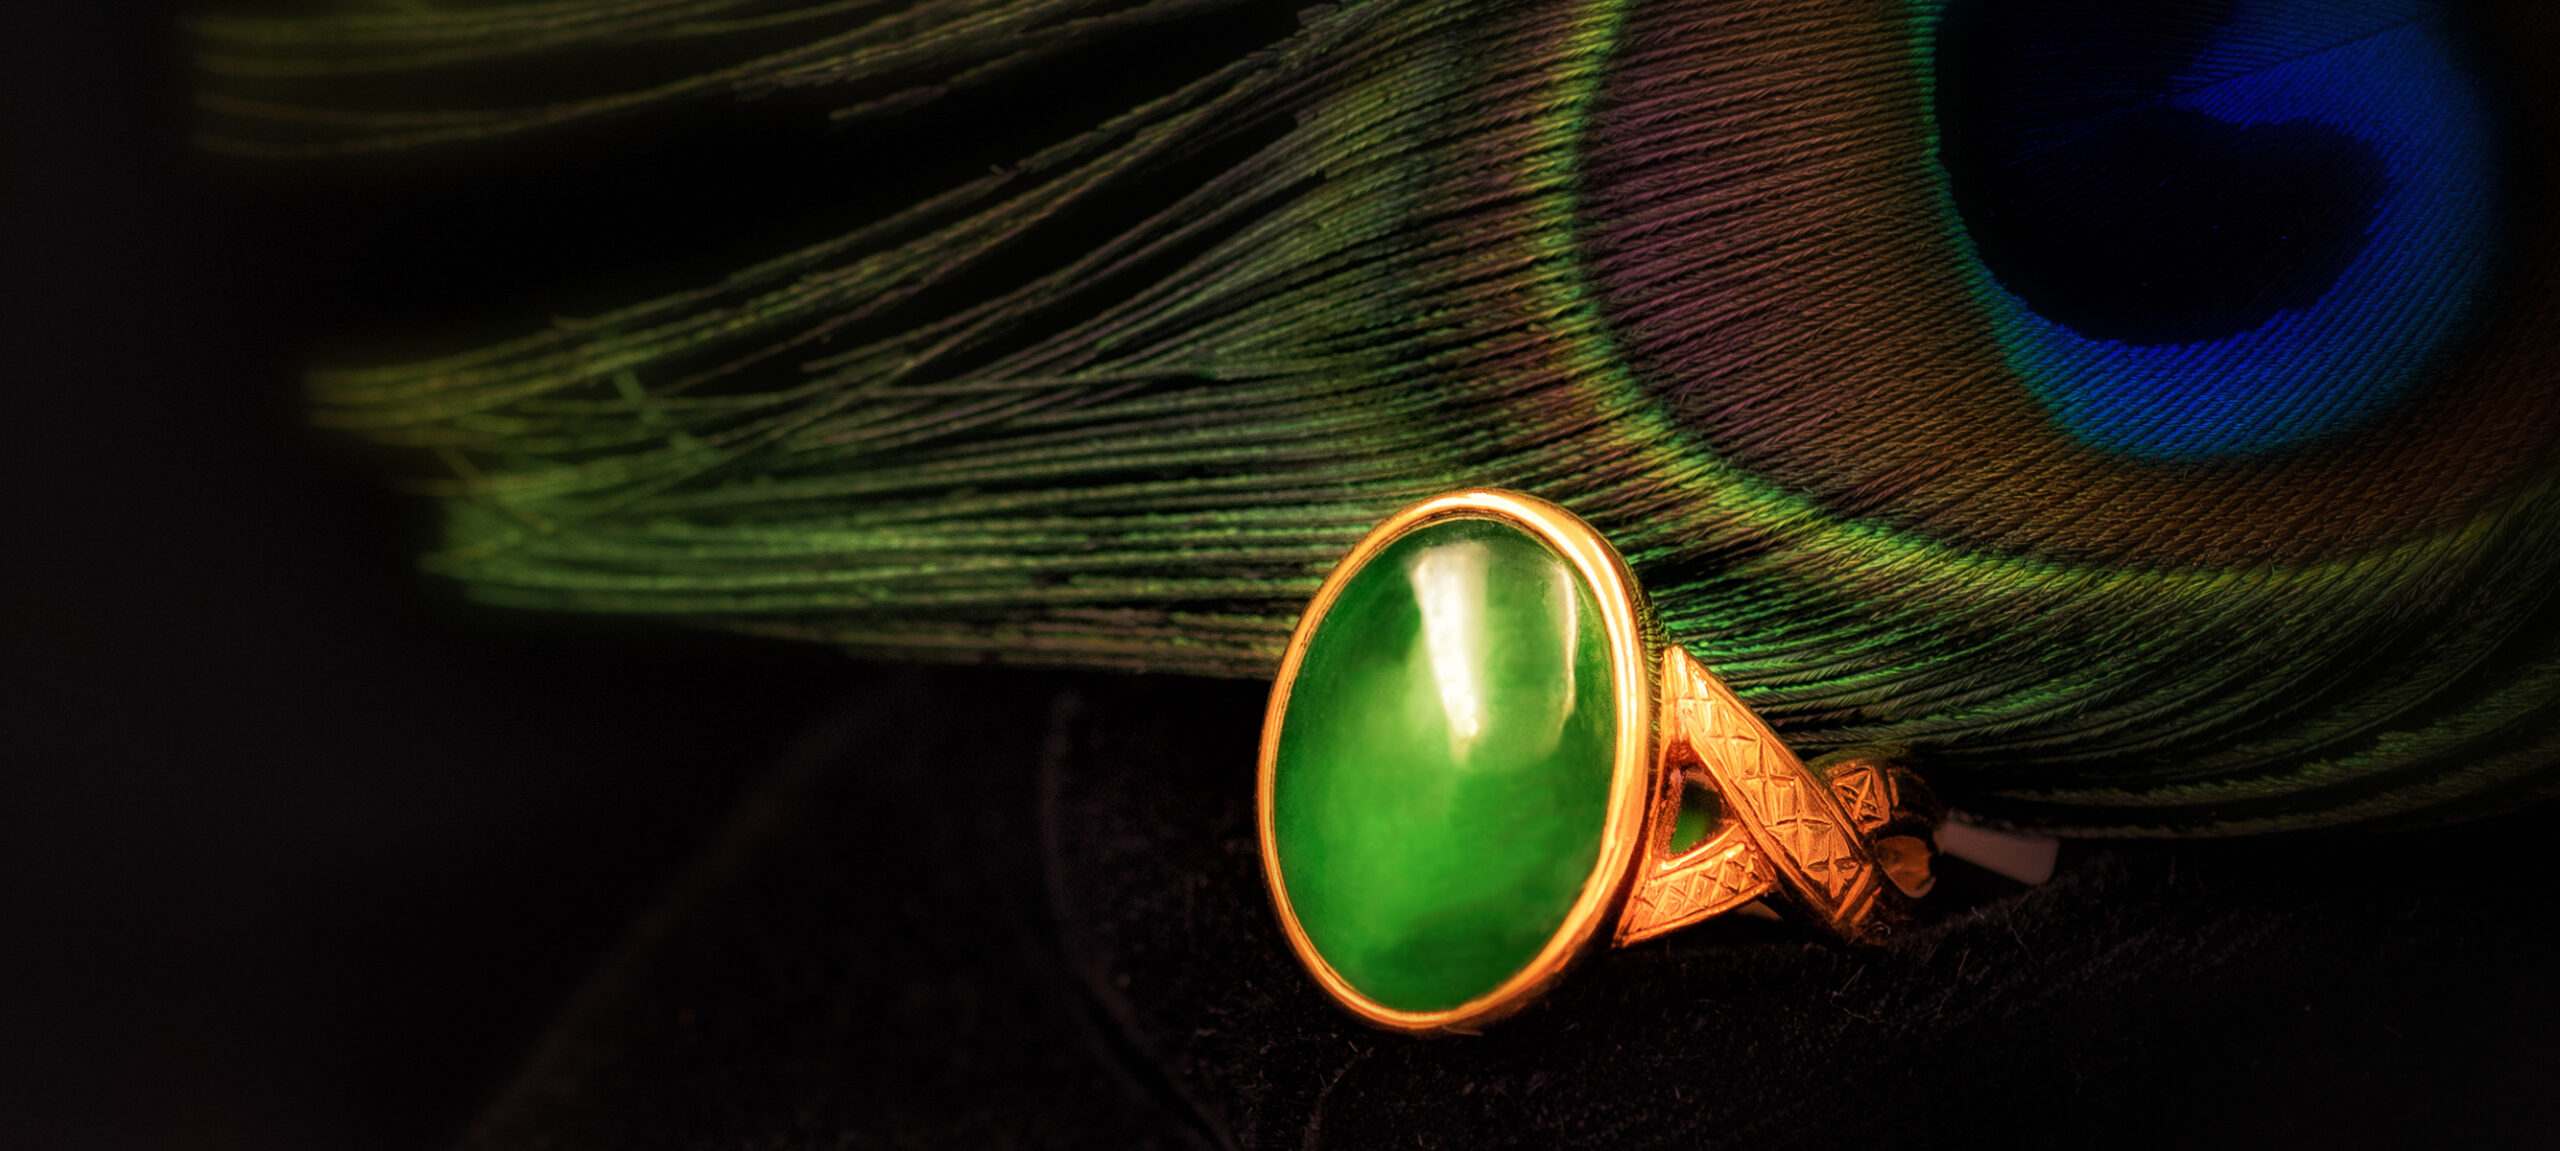 Green Jade ring against a peacock feather